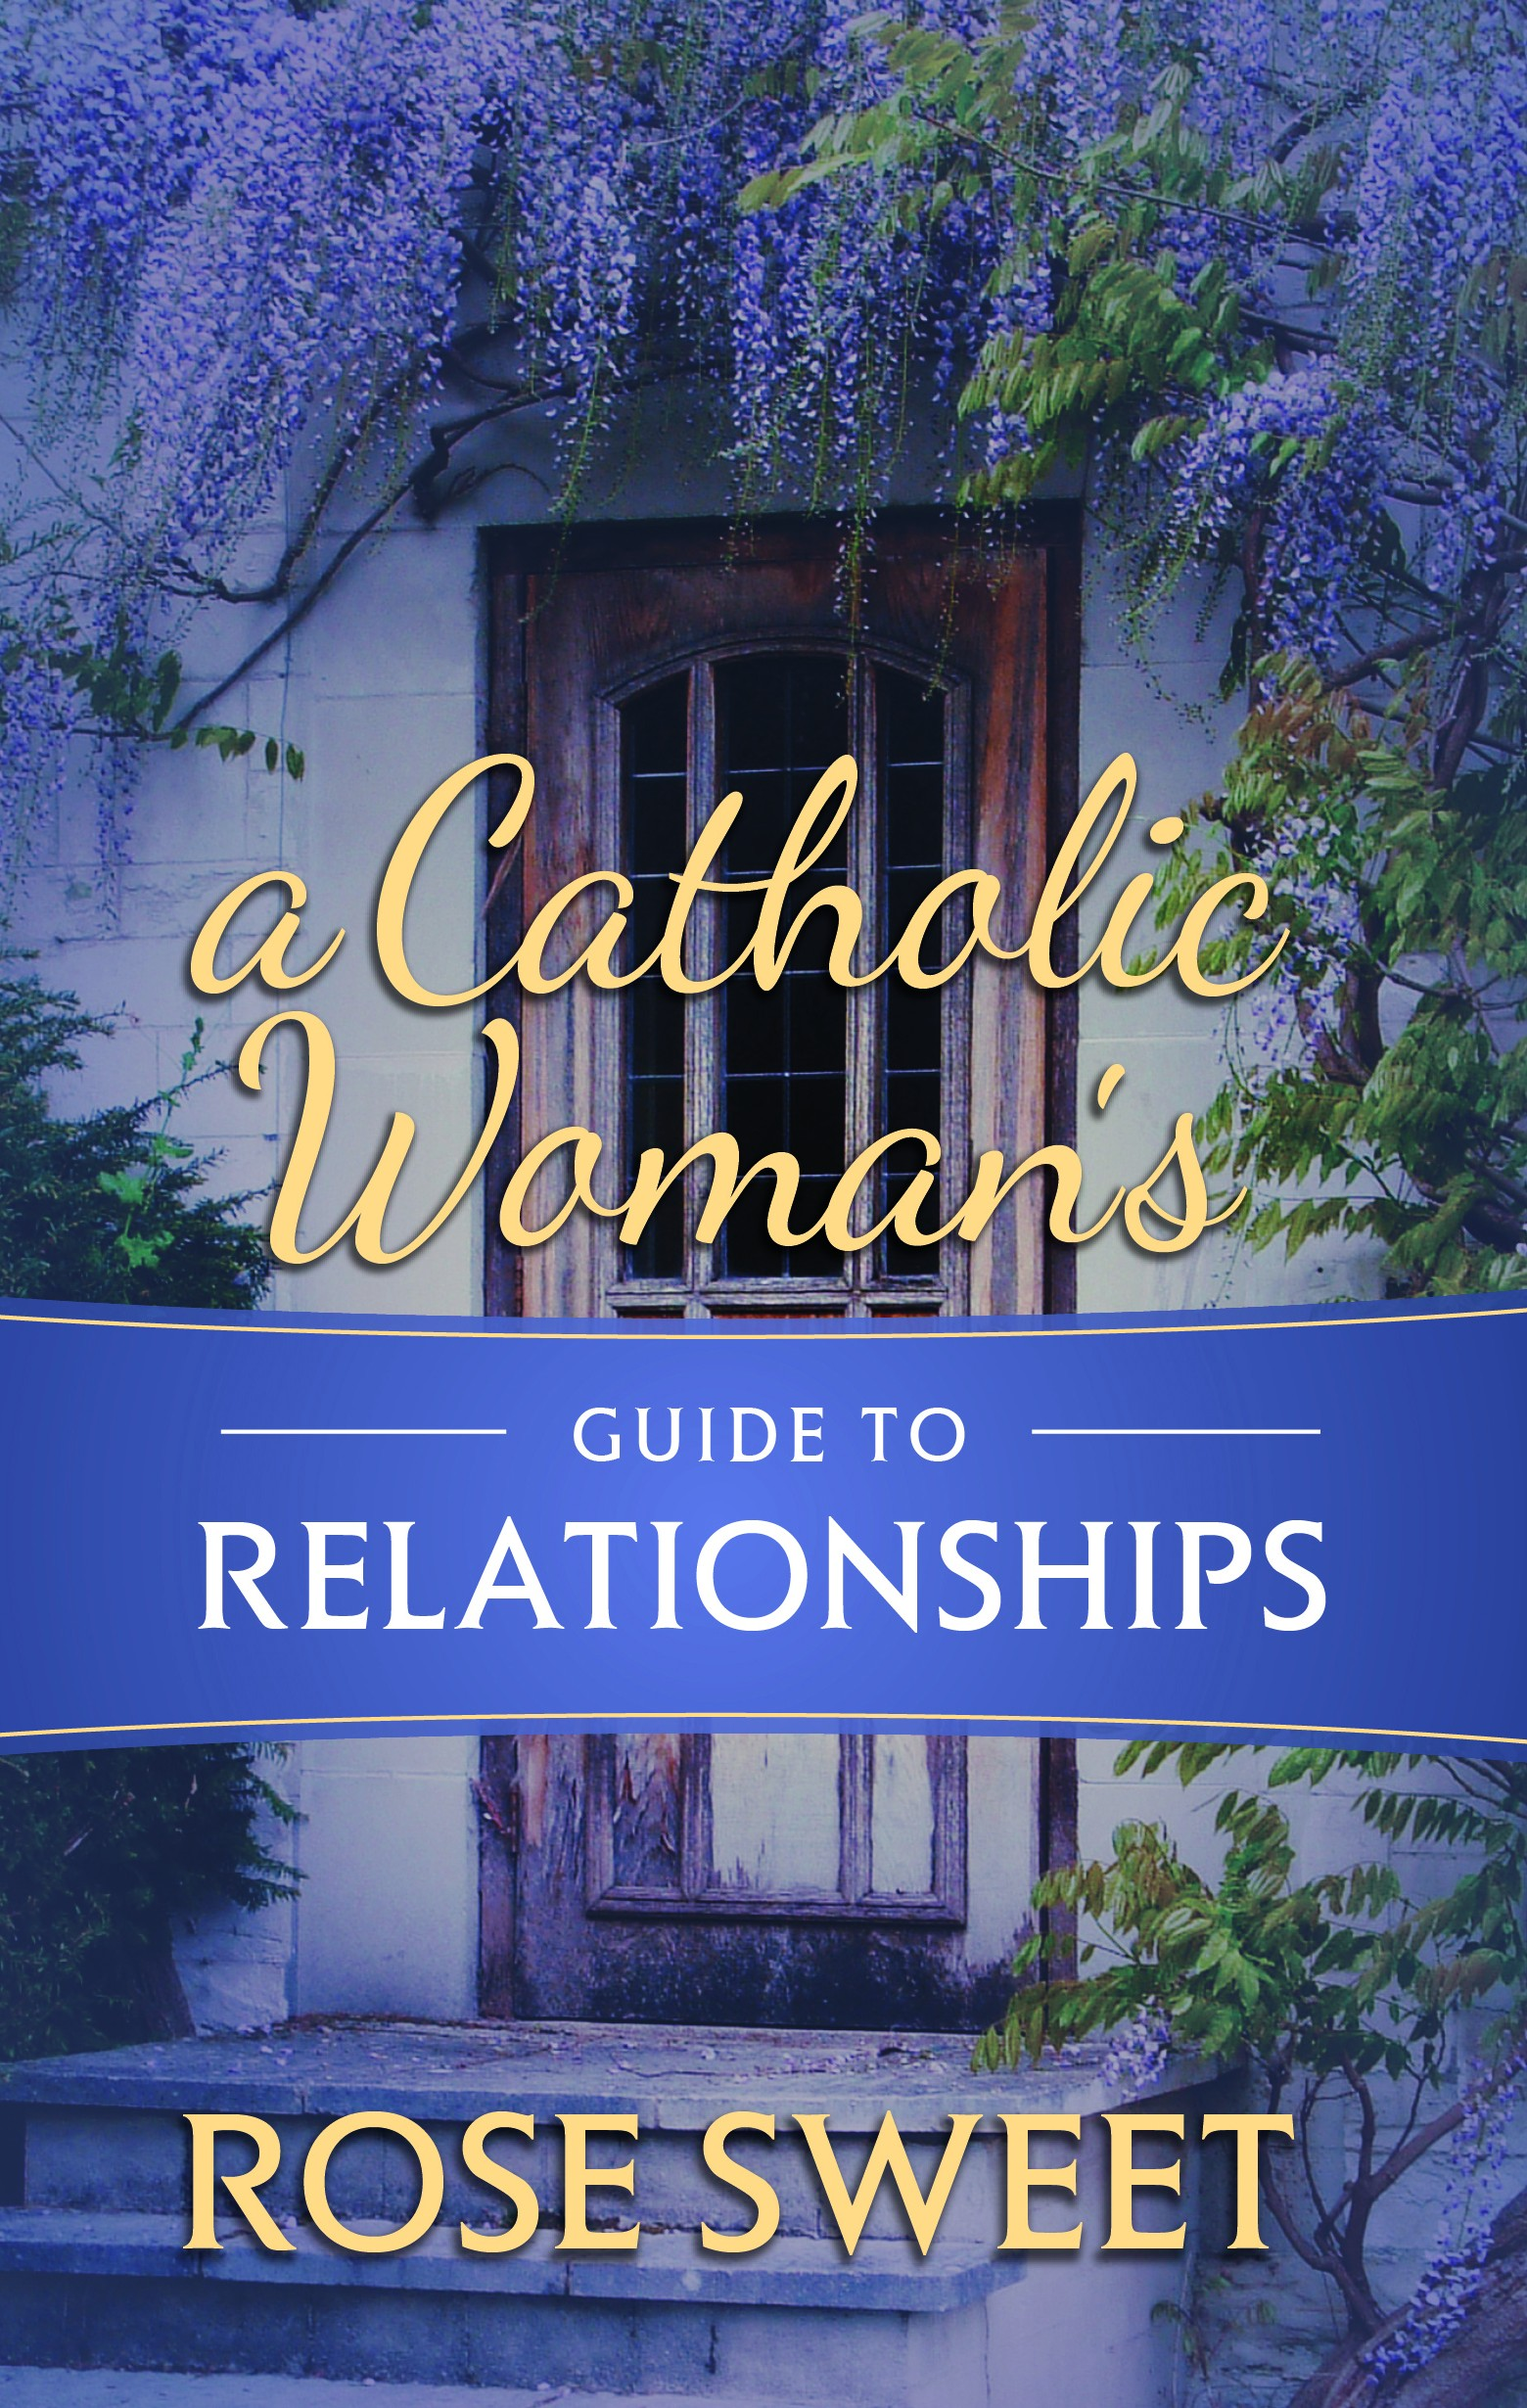 A Catholic Woman's Guide to Relationships / Rose Sweet